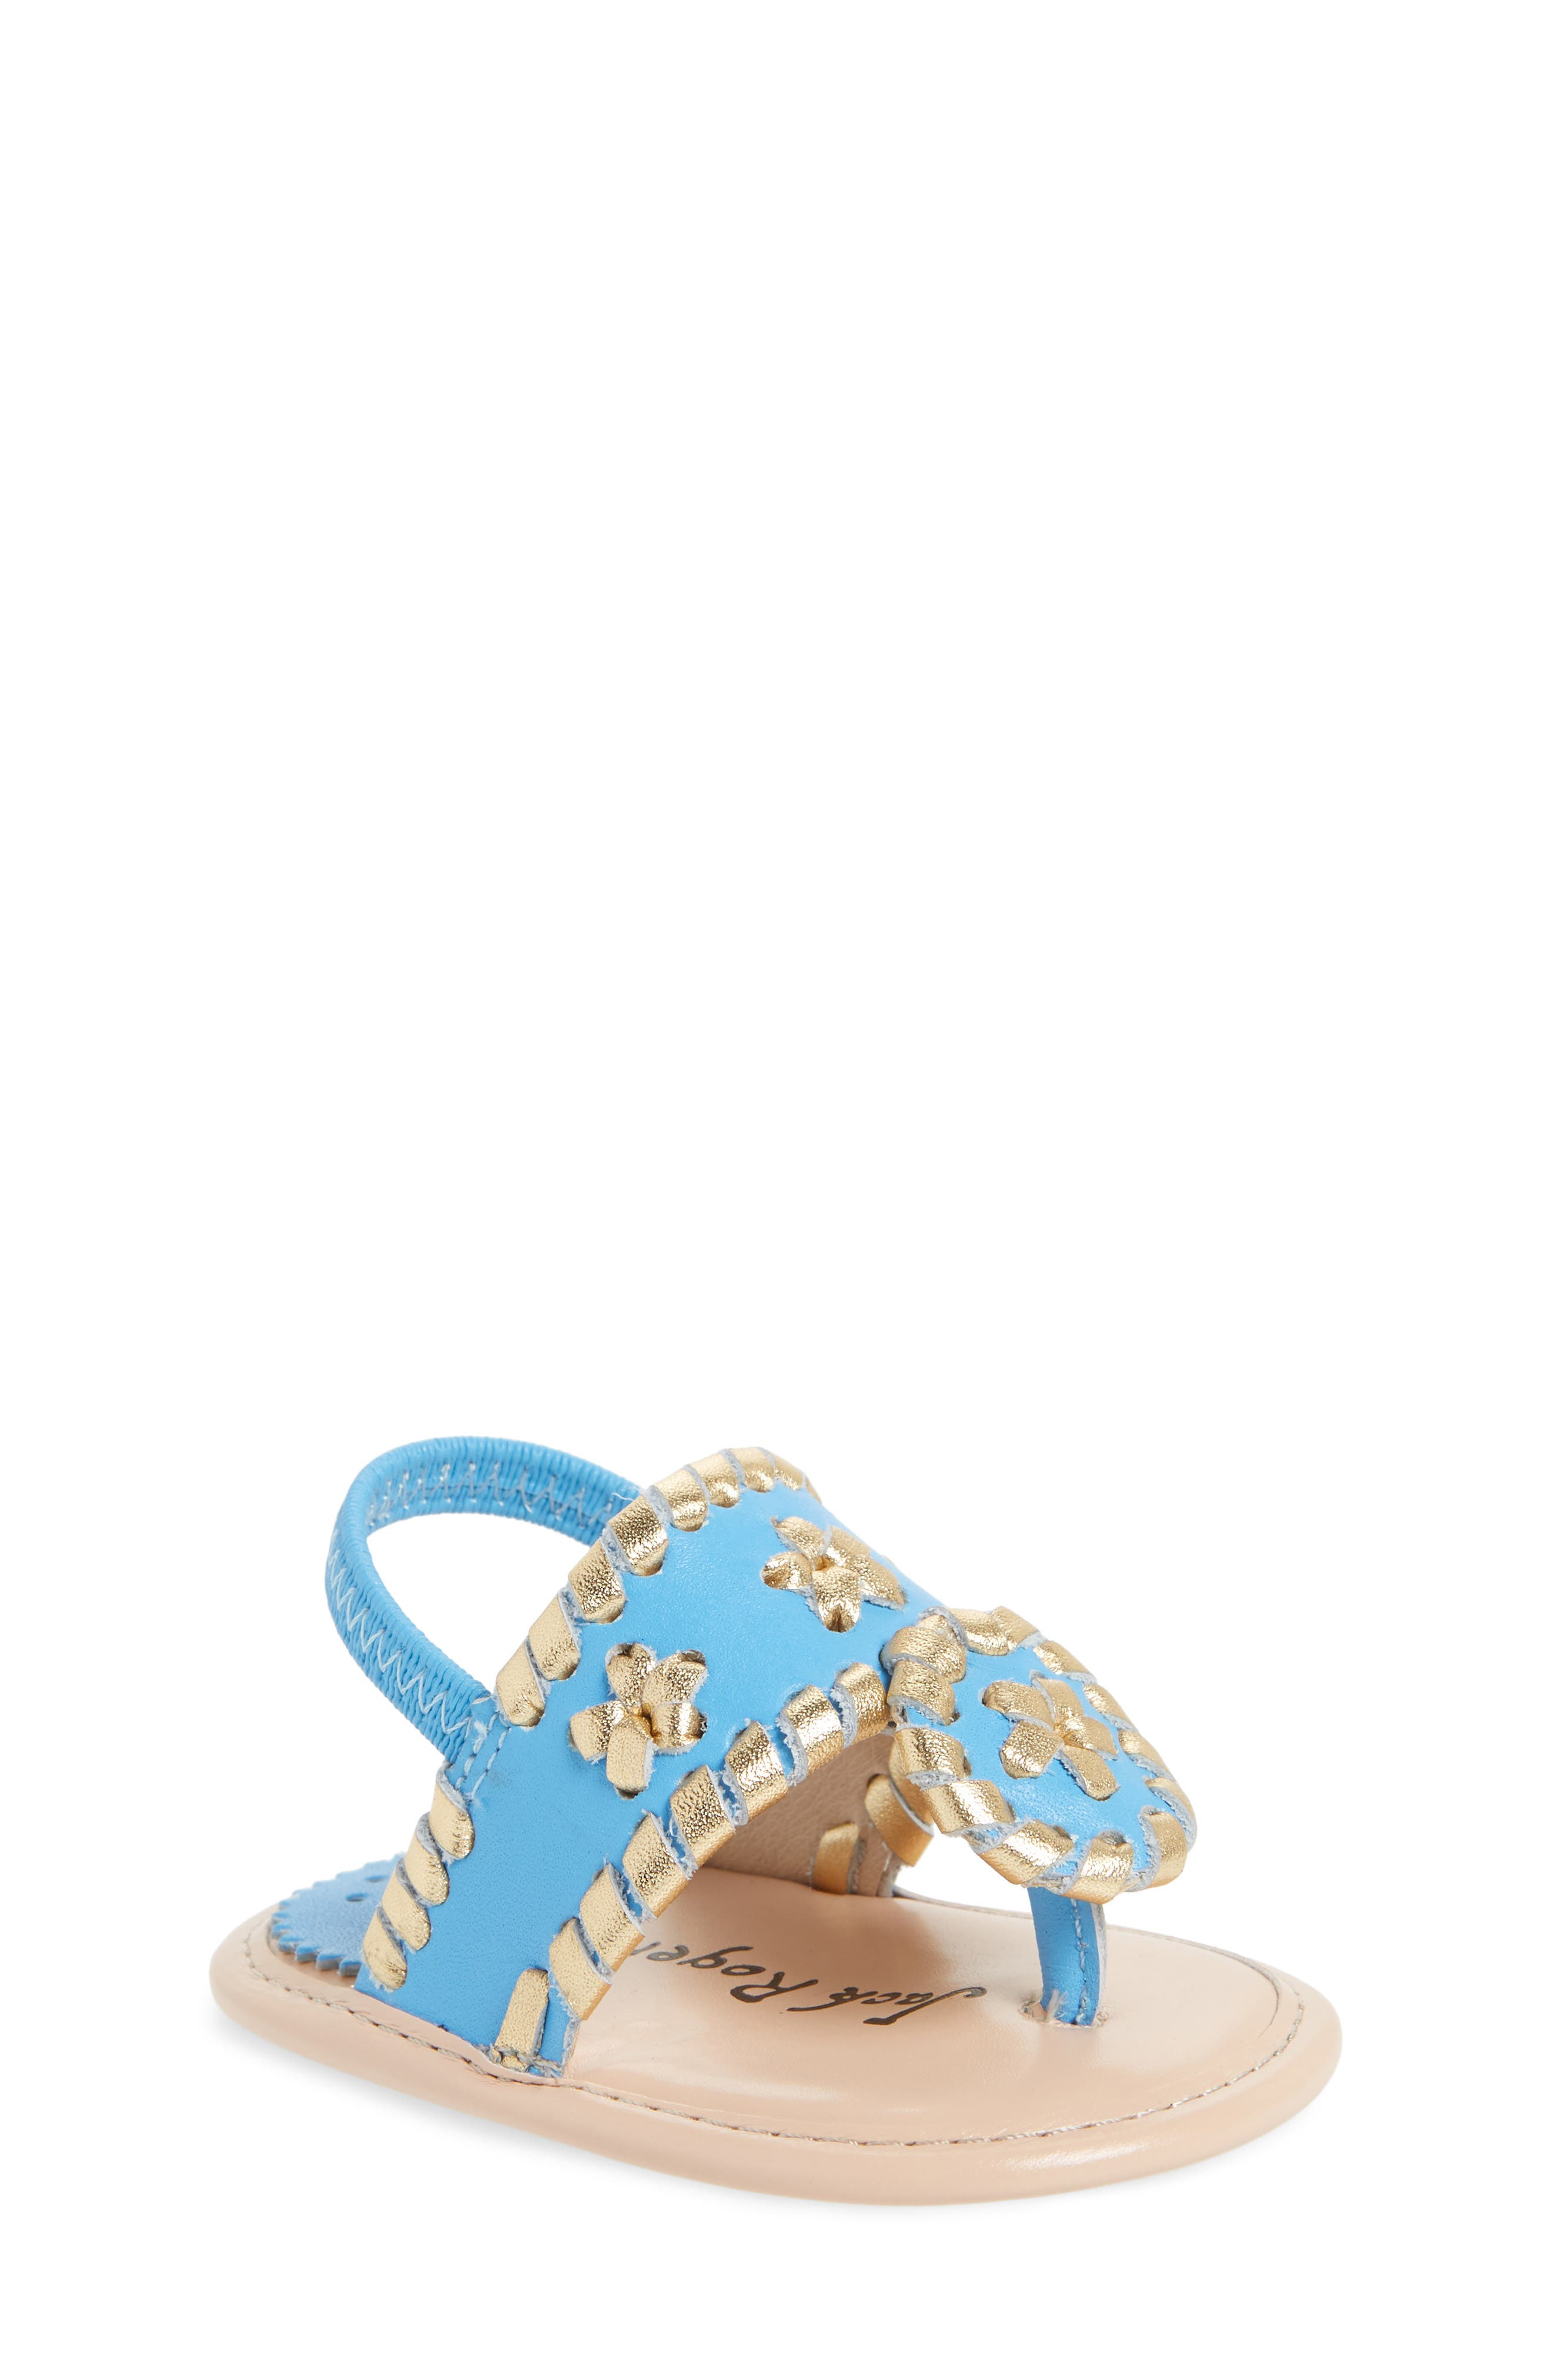 Hollis Sandal,                         Main,                         color, FRENCH BLUE/ GOLD LEATHER